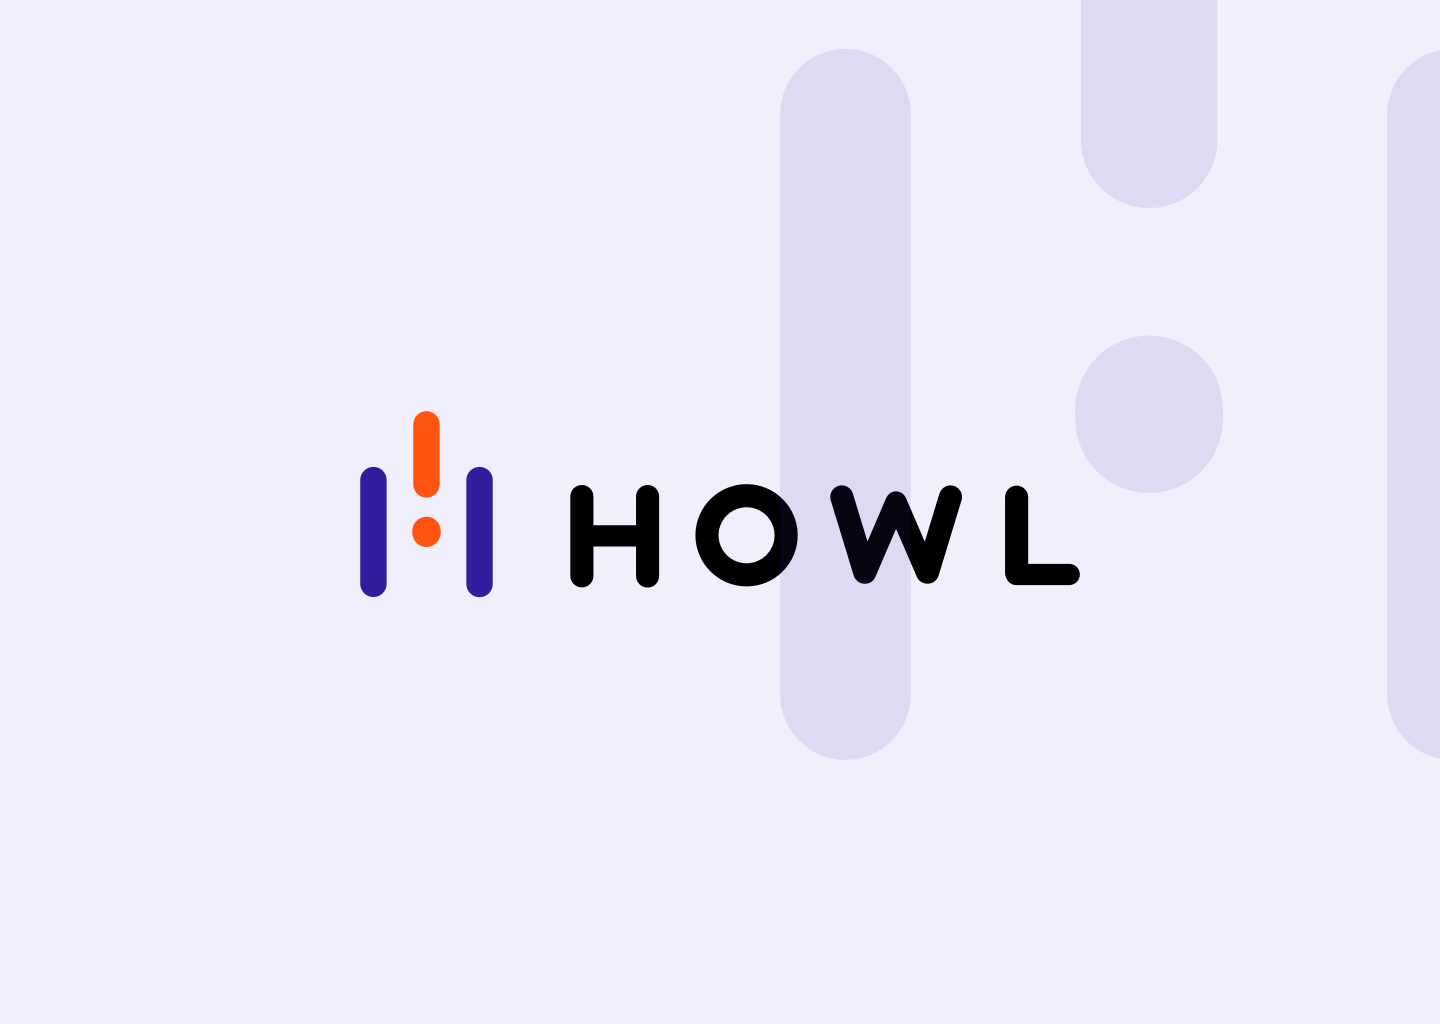 New Howl logo full lockup on a backdrop with the Howl mark watermark.